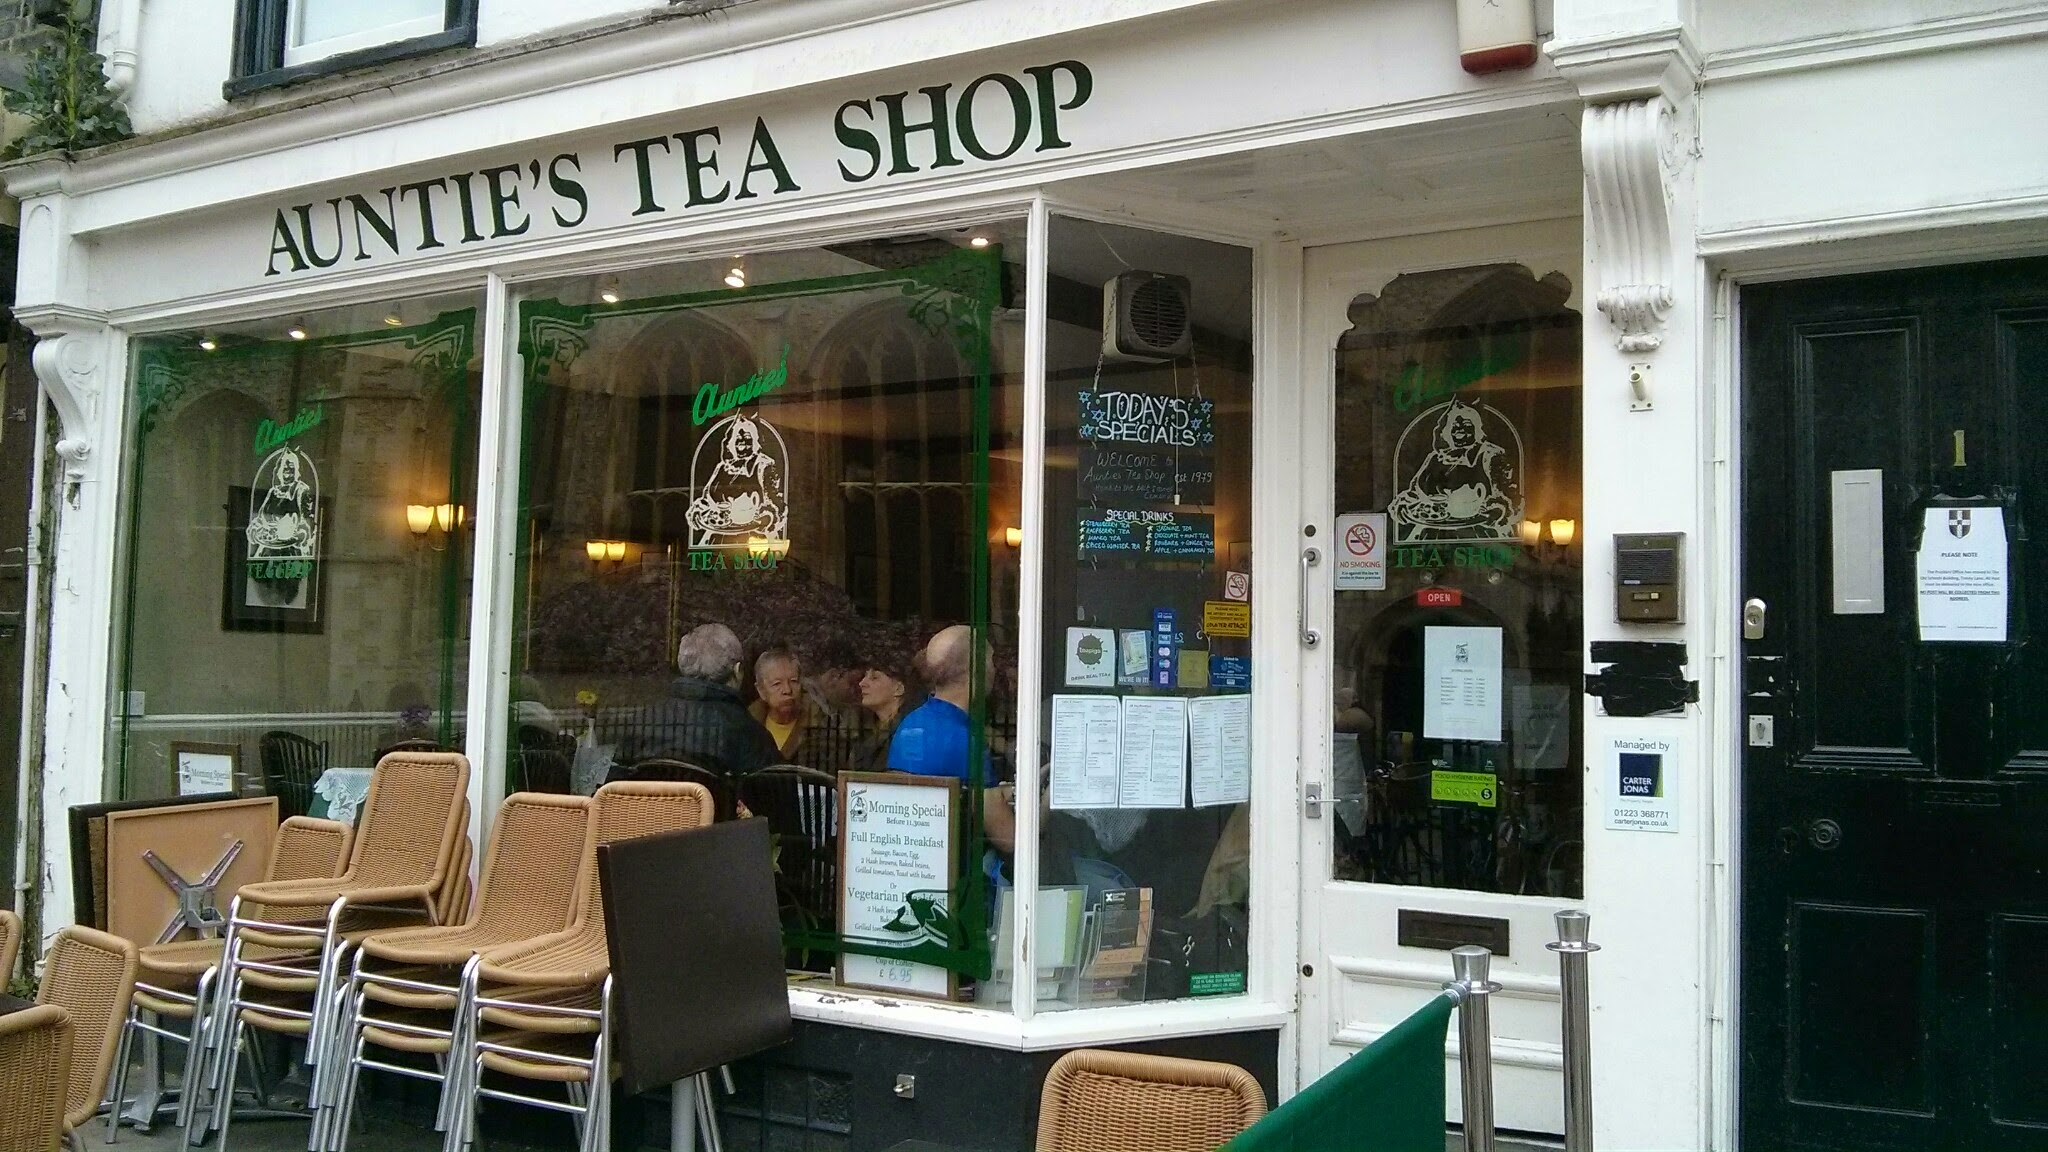 Auntie's Tea Shop, Cambridge